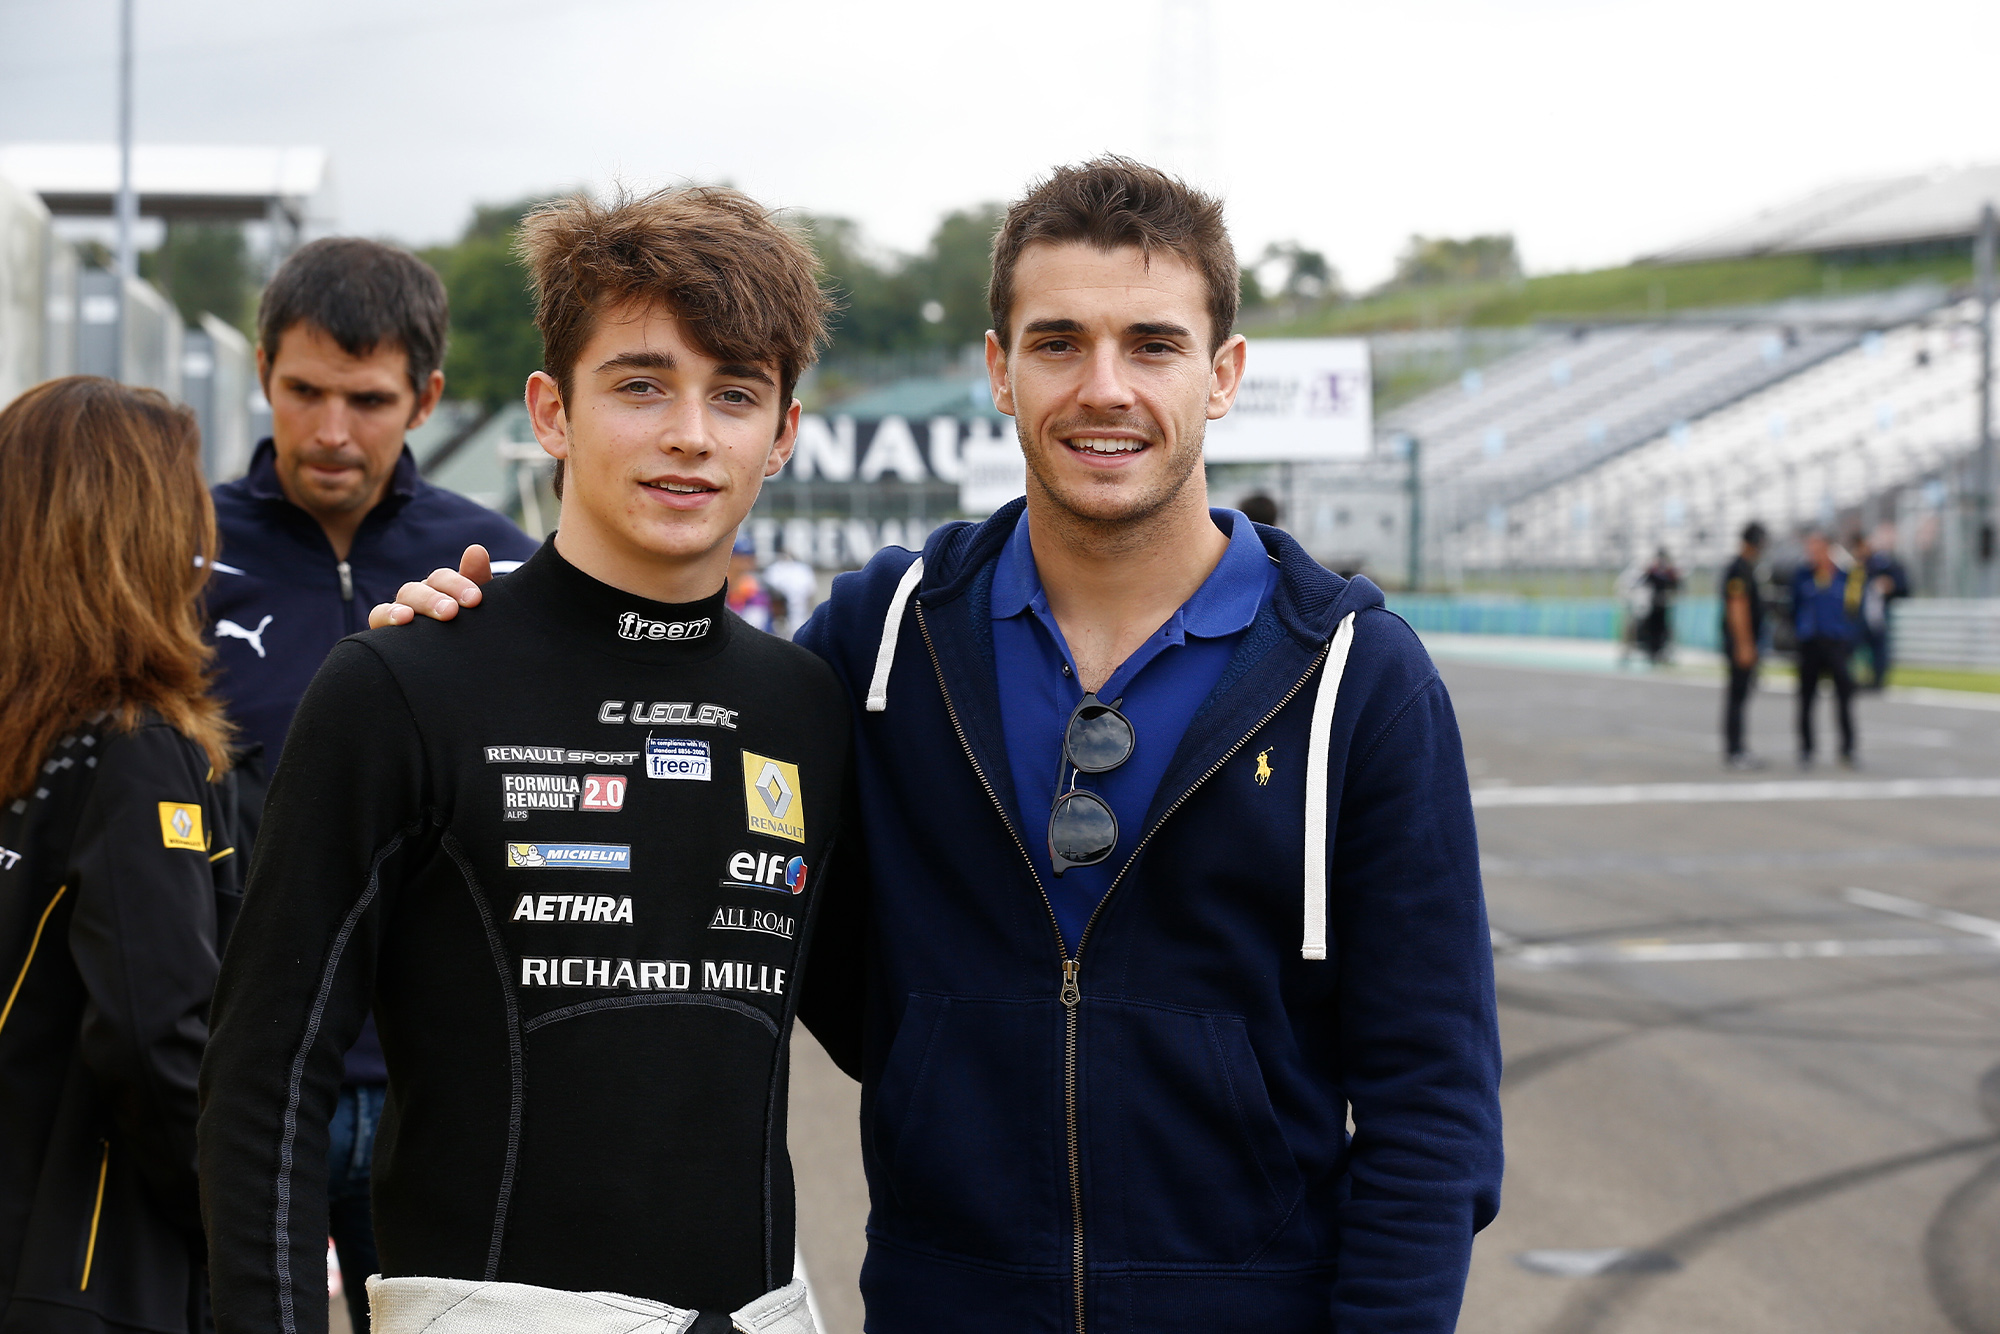 Jules Bianchi with Charles Leclerc in 2014